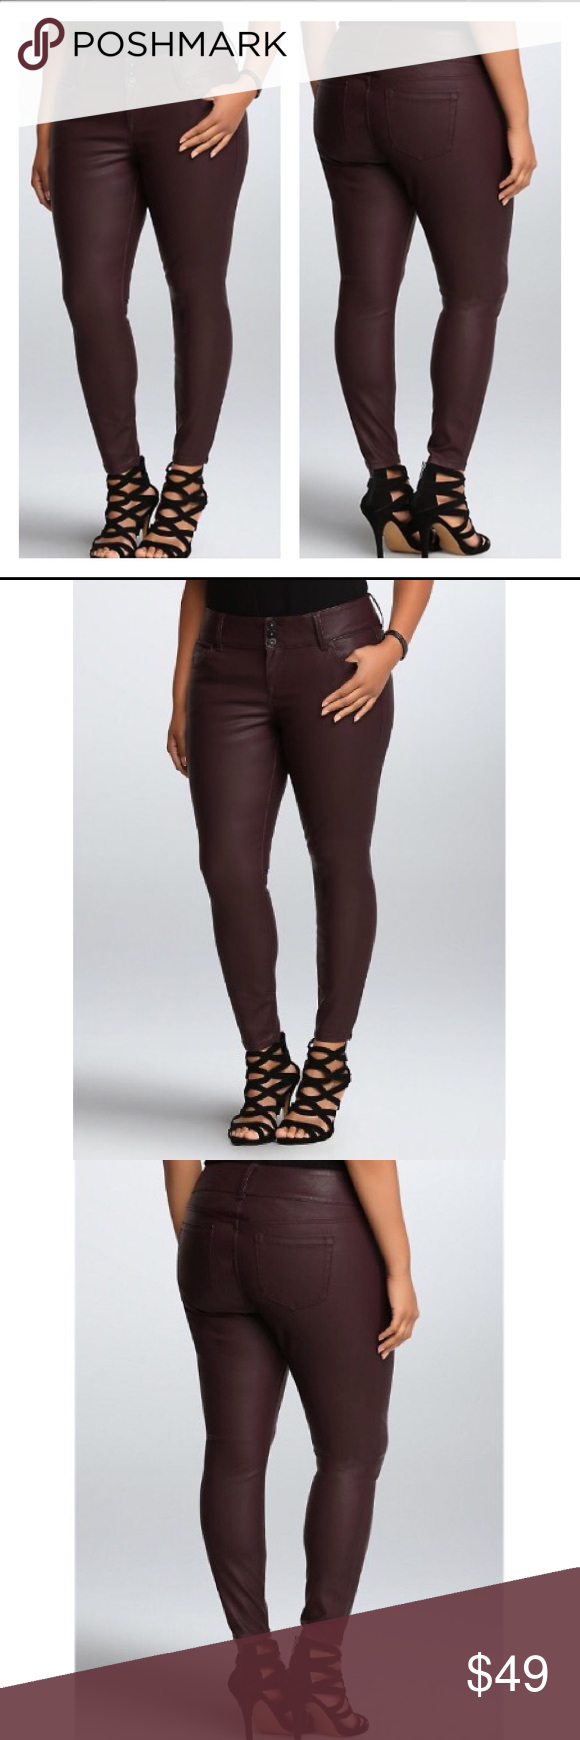 de53075c1e6ff Torrid Premium maroon faux leather pants Super sexy faux leather with the  feel and stretch of a jegging...we're sold! Smooth oxblood faux leather  gets a ...